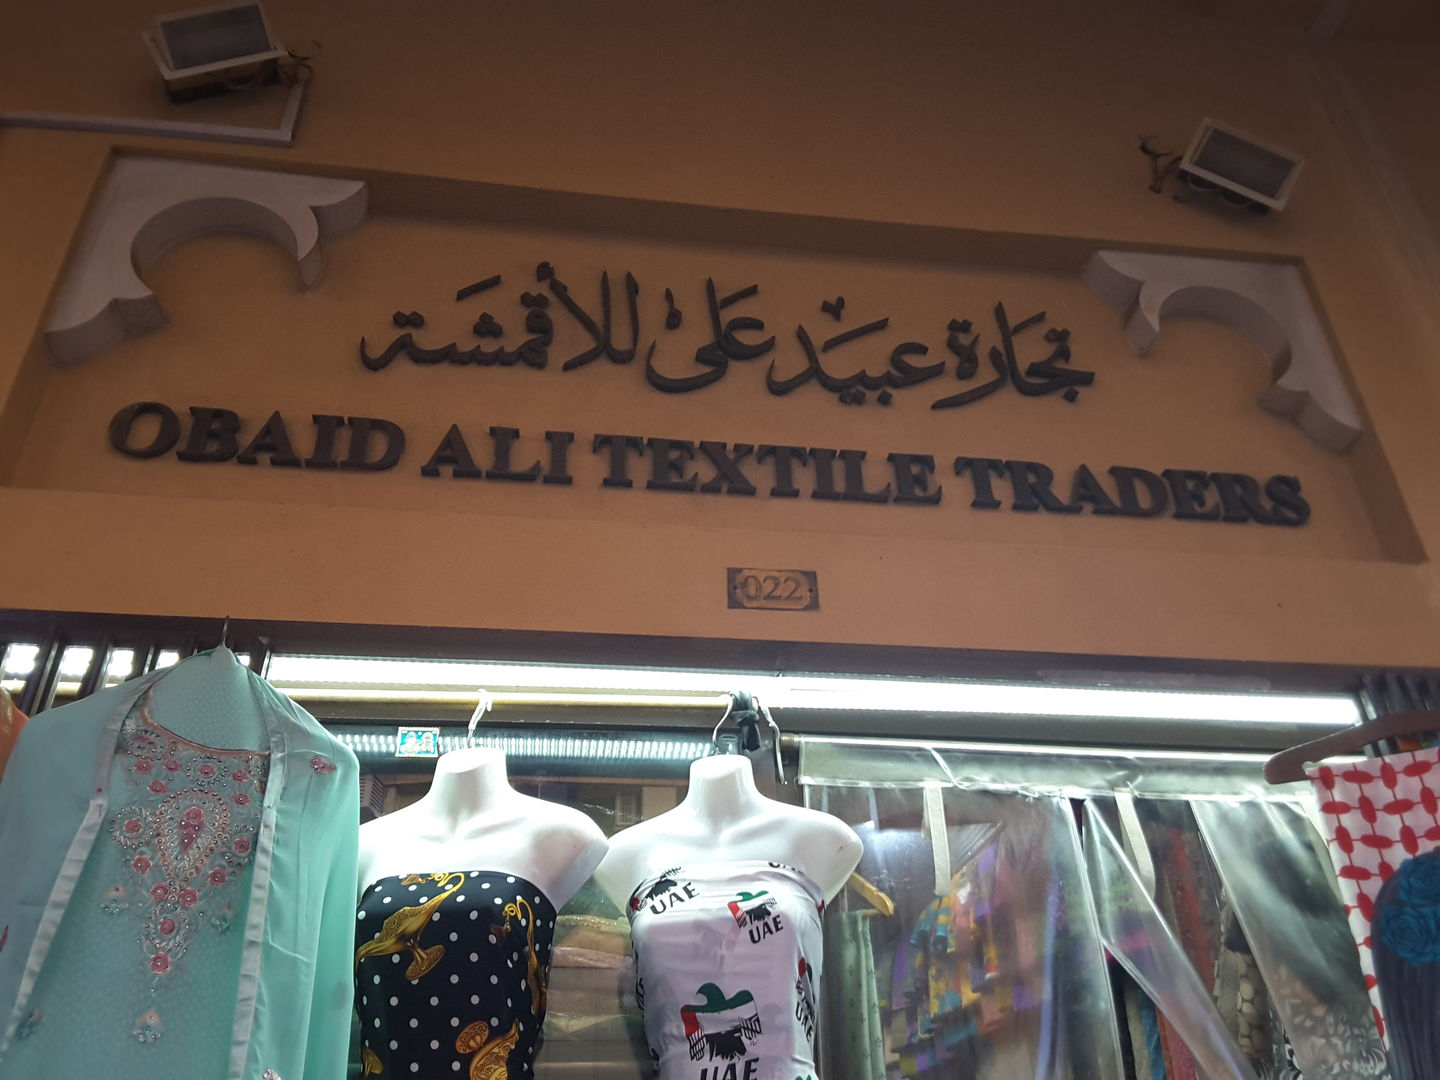 HiDubai-business-obaid-ali-textile-traders-shopping-apparel-naif-dubai-2